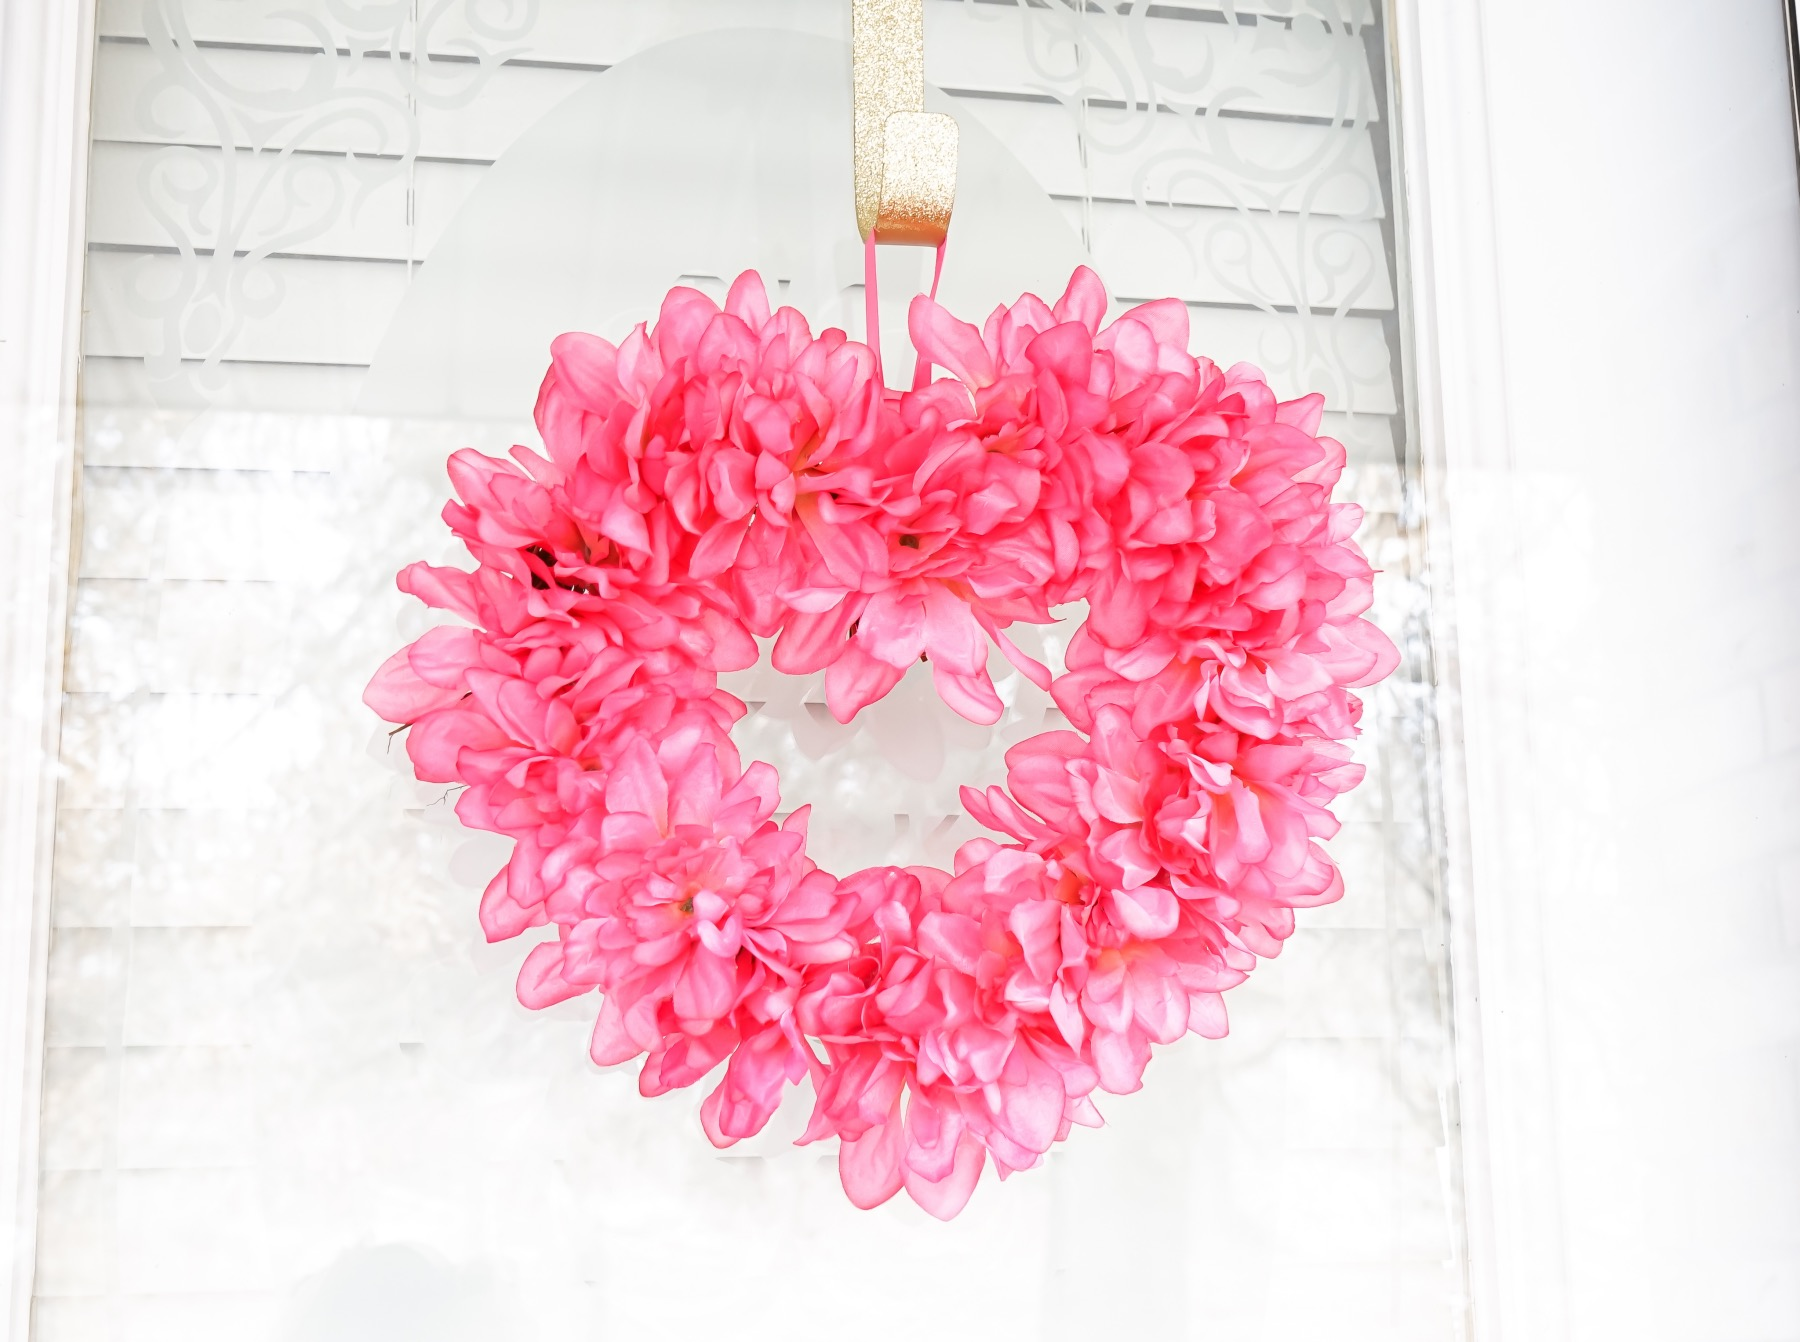 hang the pink flower heart wreath diy on a door